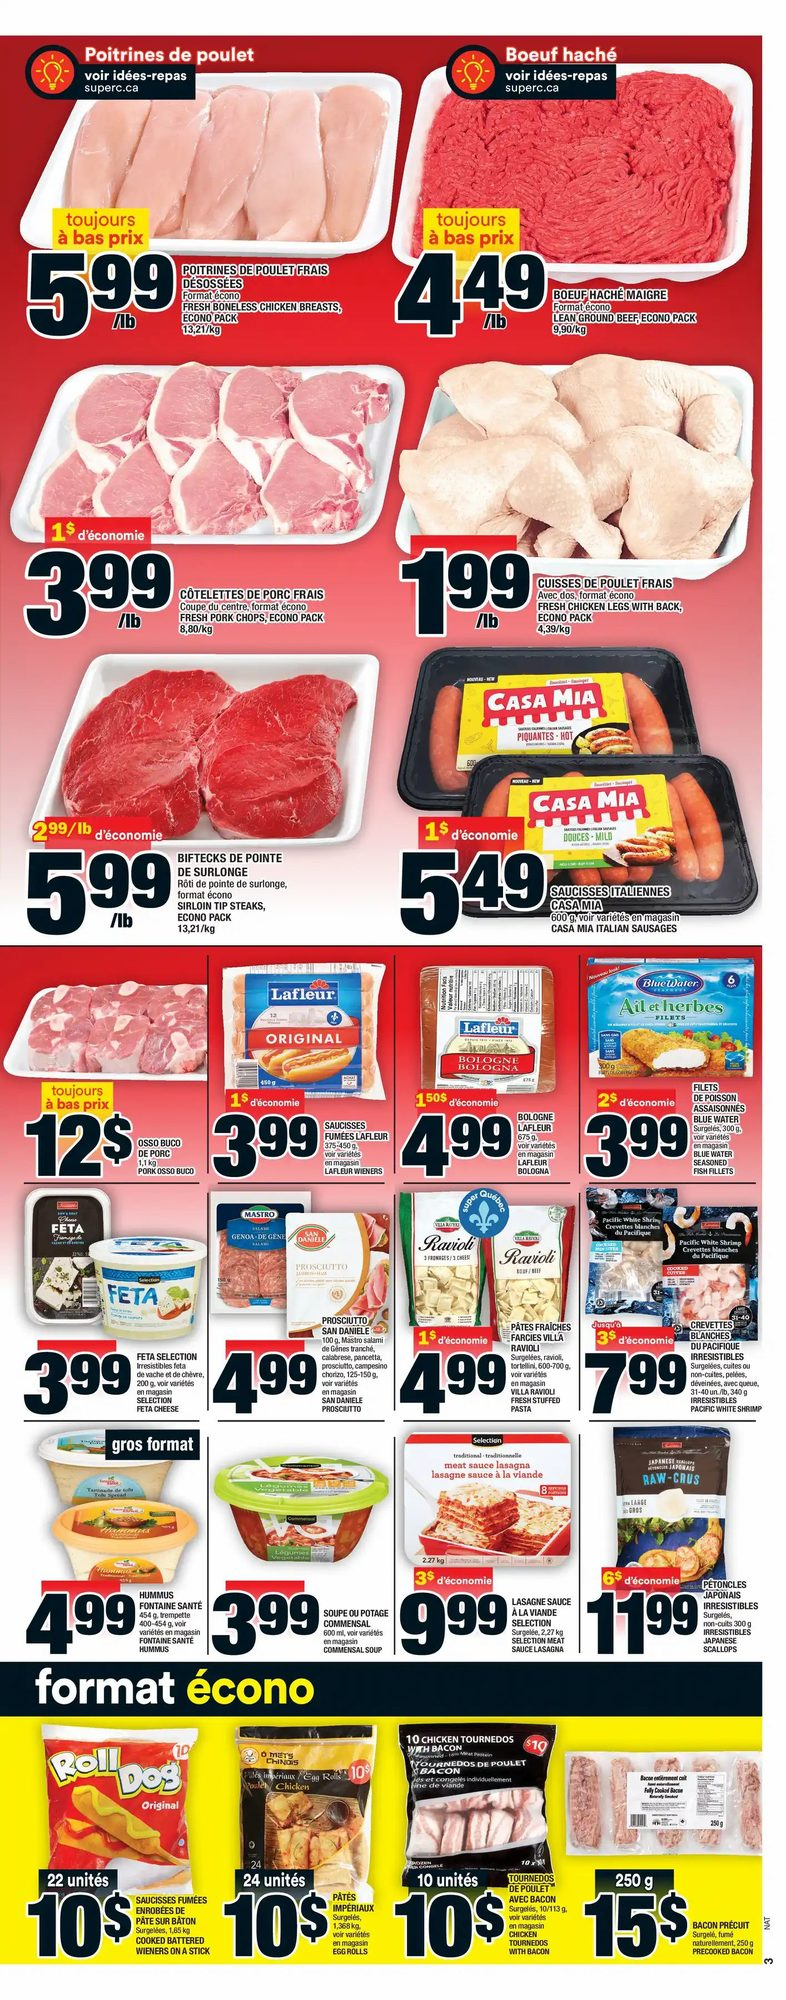 Super C - Weekly Flyer Specials - Page 6